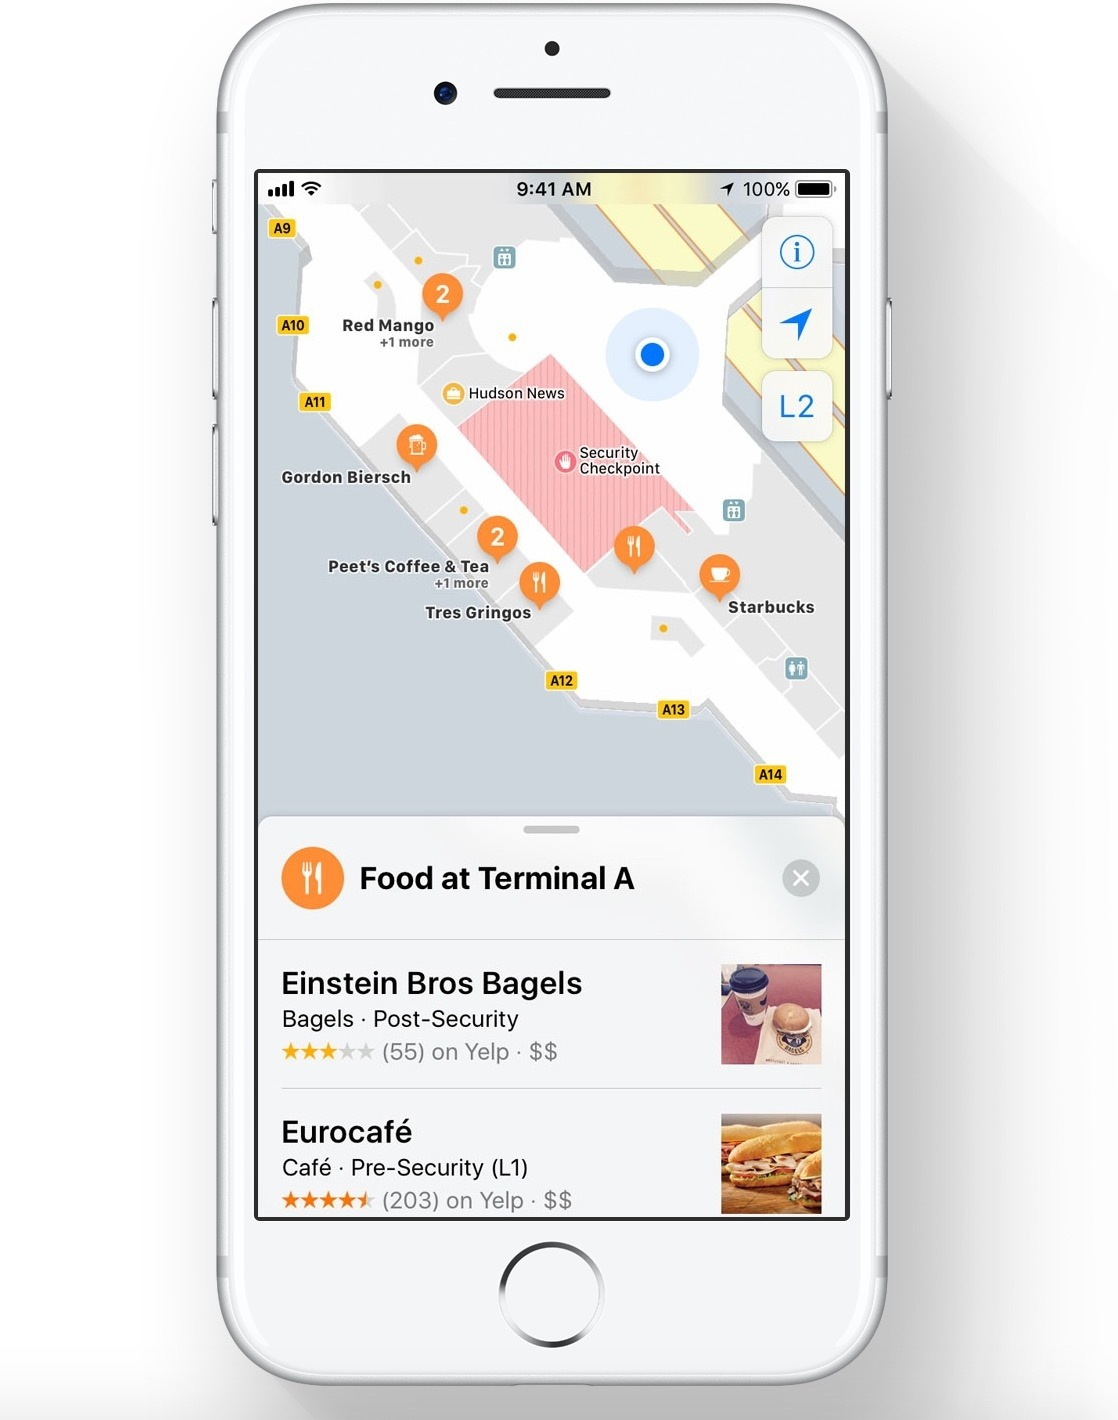 Does Apple maps use less data than Google maps? - Quora on